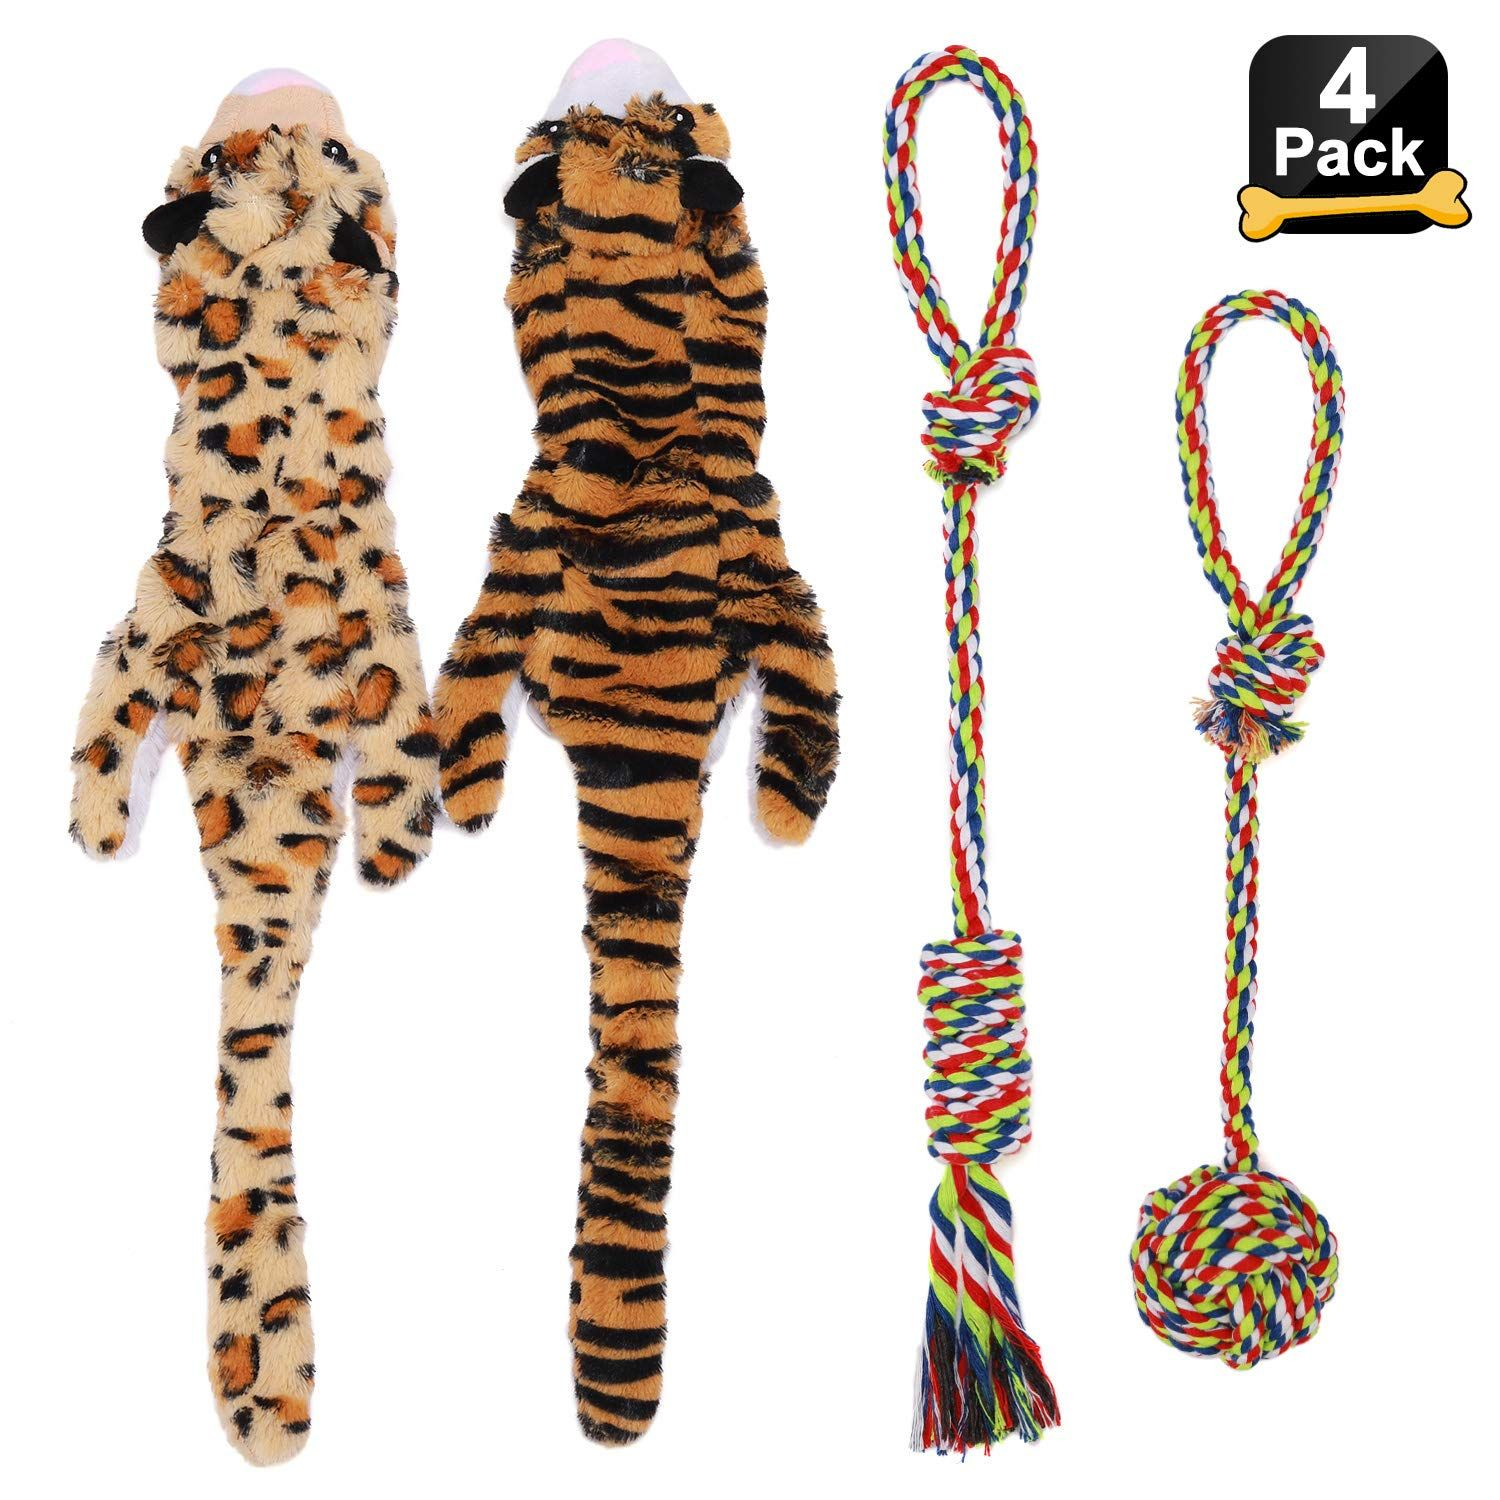 Dog Toys Pack Dog Chew Toys For Aggressive Chewers Stuffingless